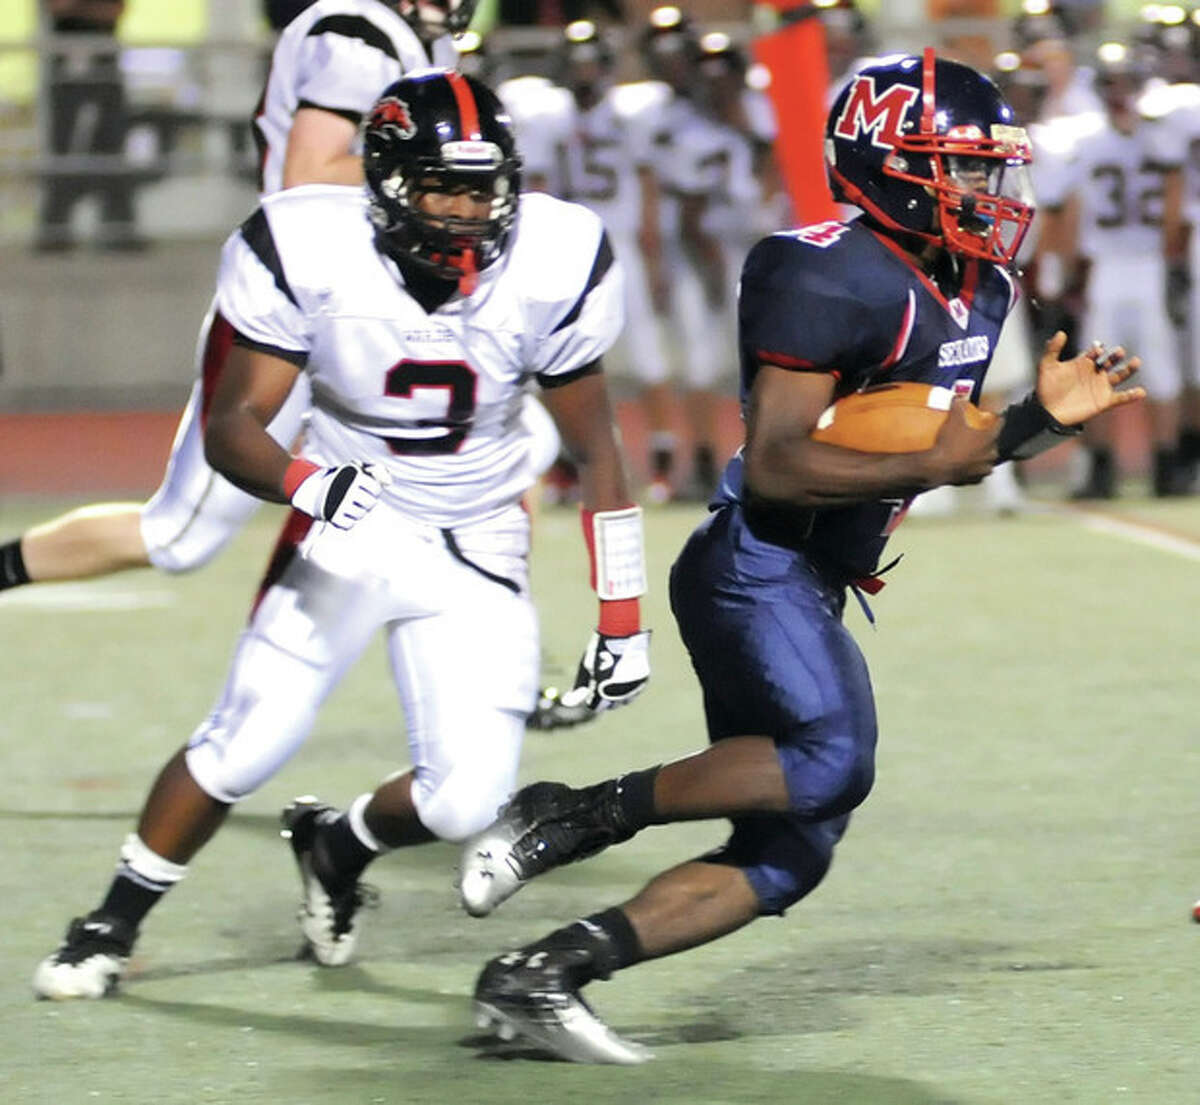 Hour photo/John Nash Brien McMahon's Trevon Forney races past a Fairfield Warde defender during last Friday's game. Forney scored three touchdowns -- all from long range -- in a breakout performance that will force opposing coaches to be aware of his presence.